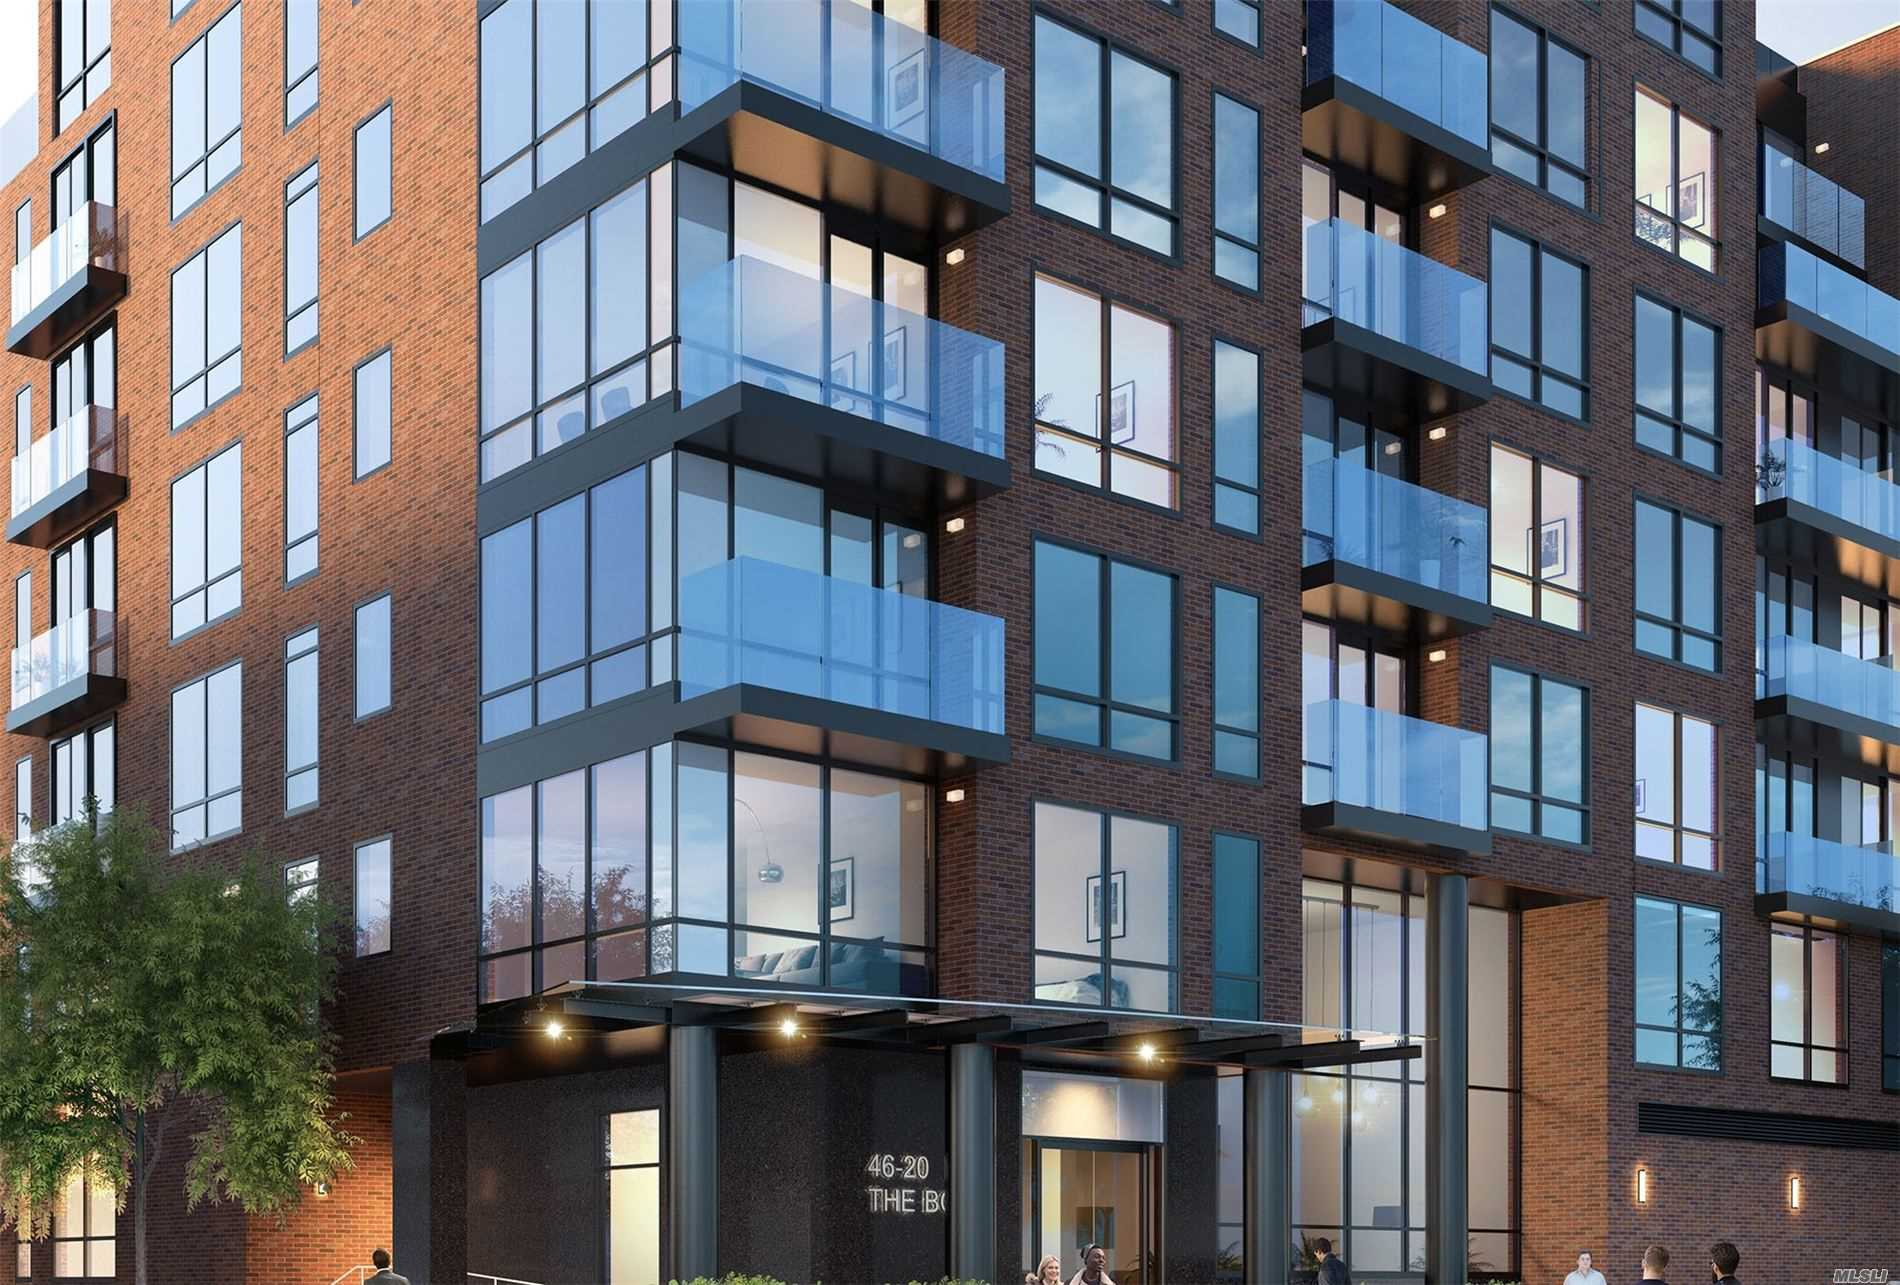 Property for sale at 46-20 11th St Unit: 7B, Long Island City,  New York 11101